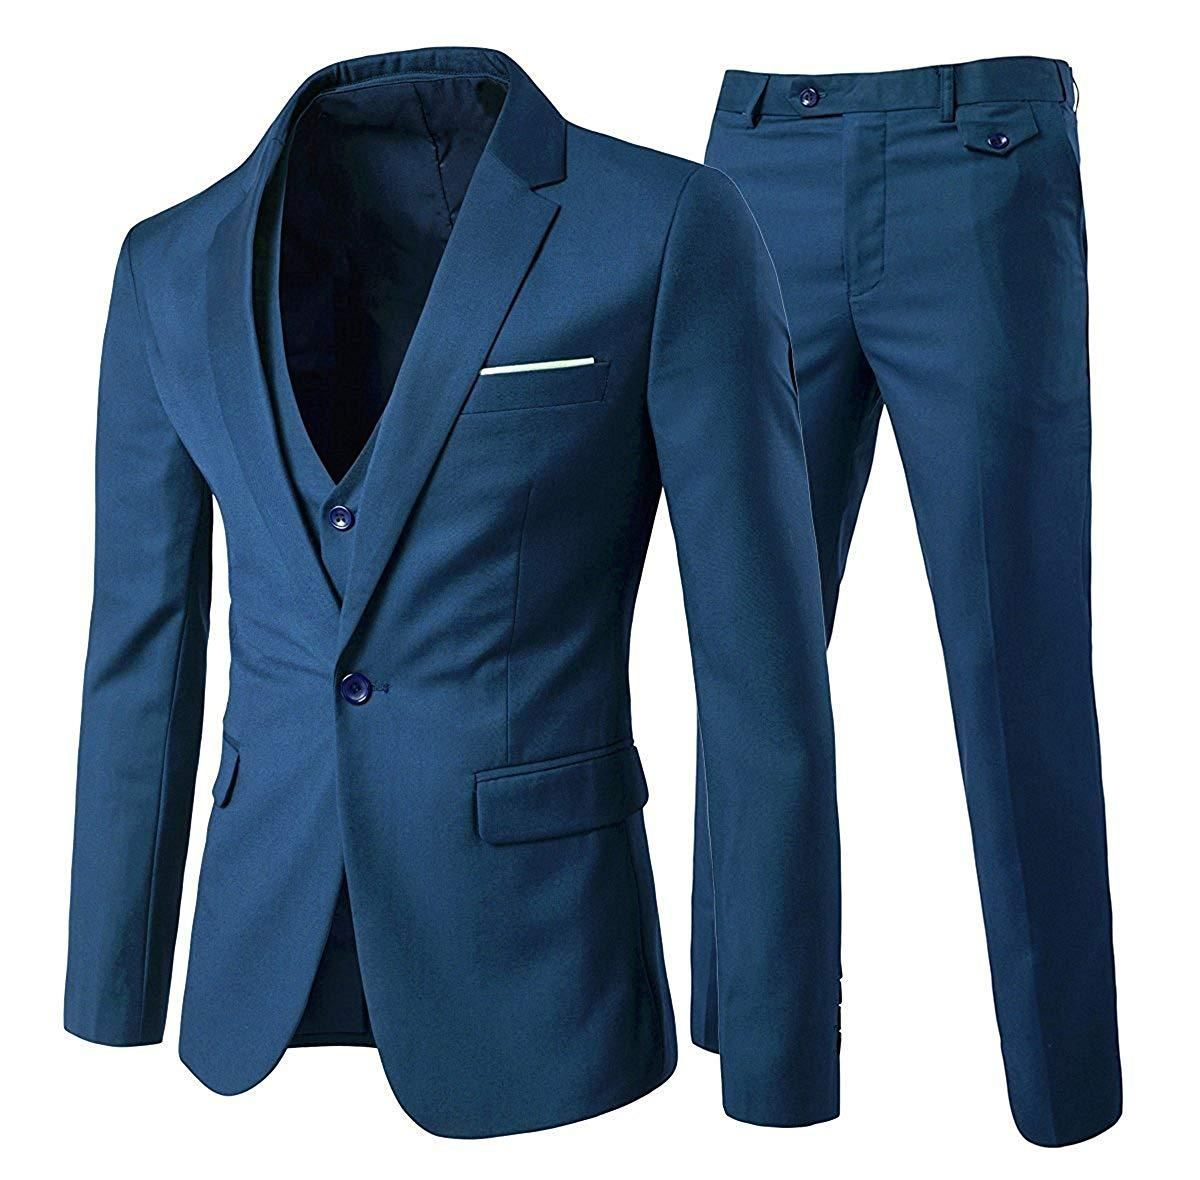 Fashion Mens Slim Fit One Button Wedding Blazers Suits Dress Coats Pants Vests